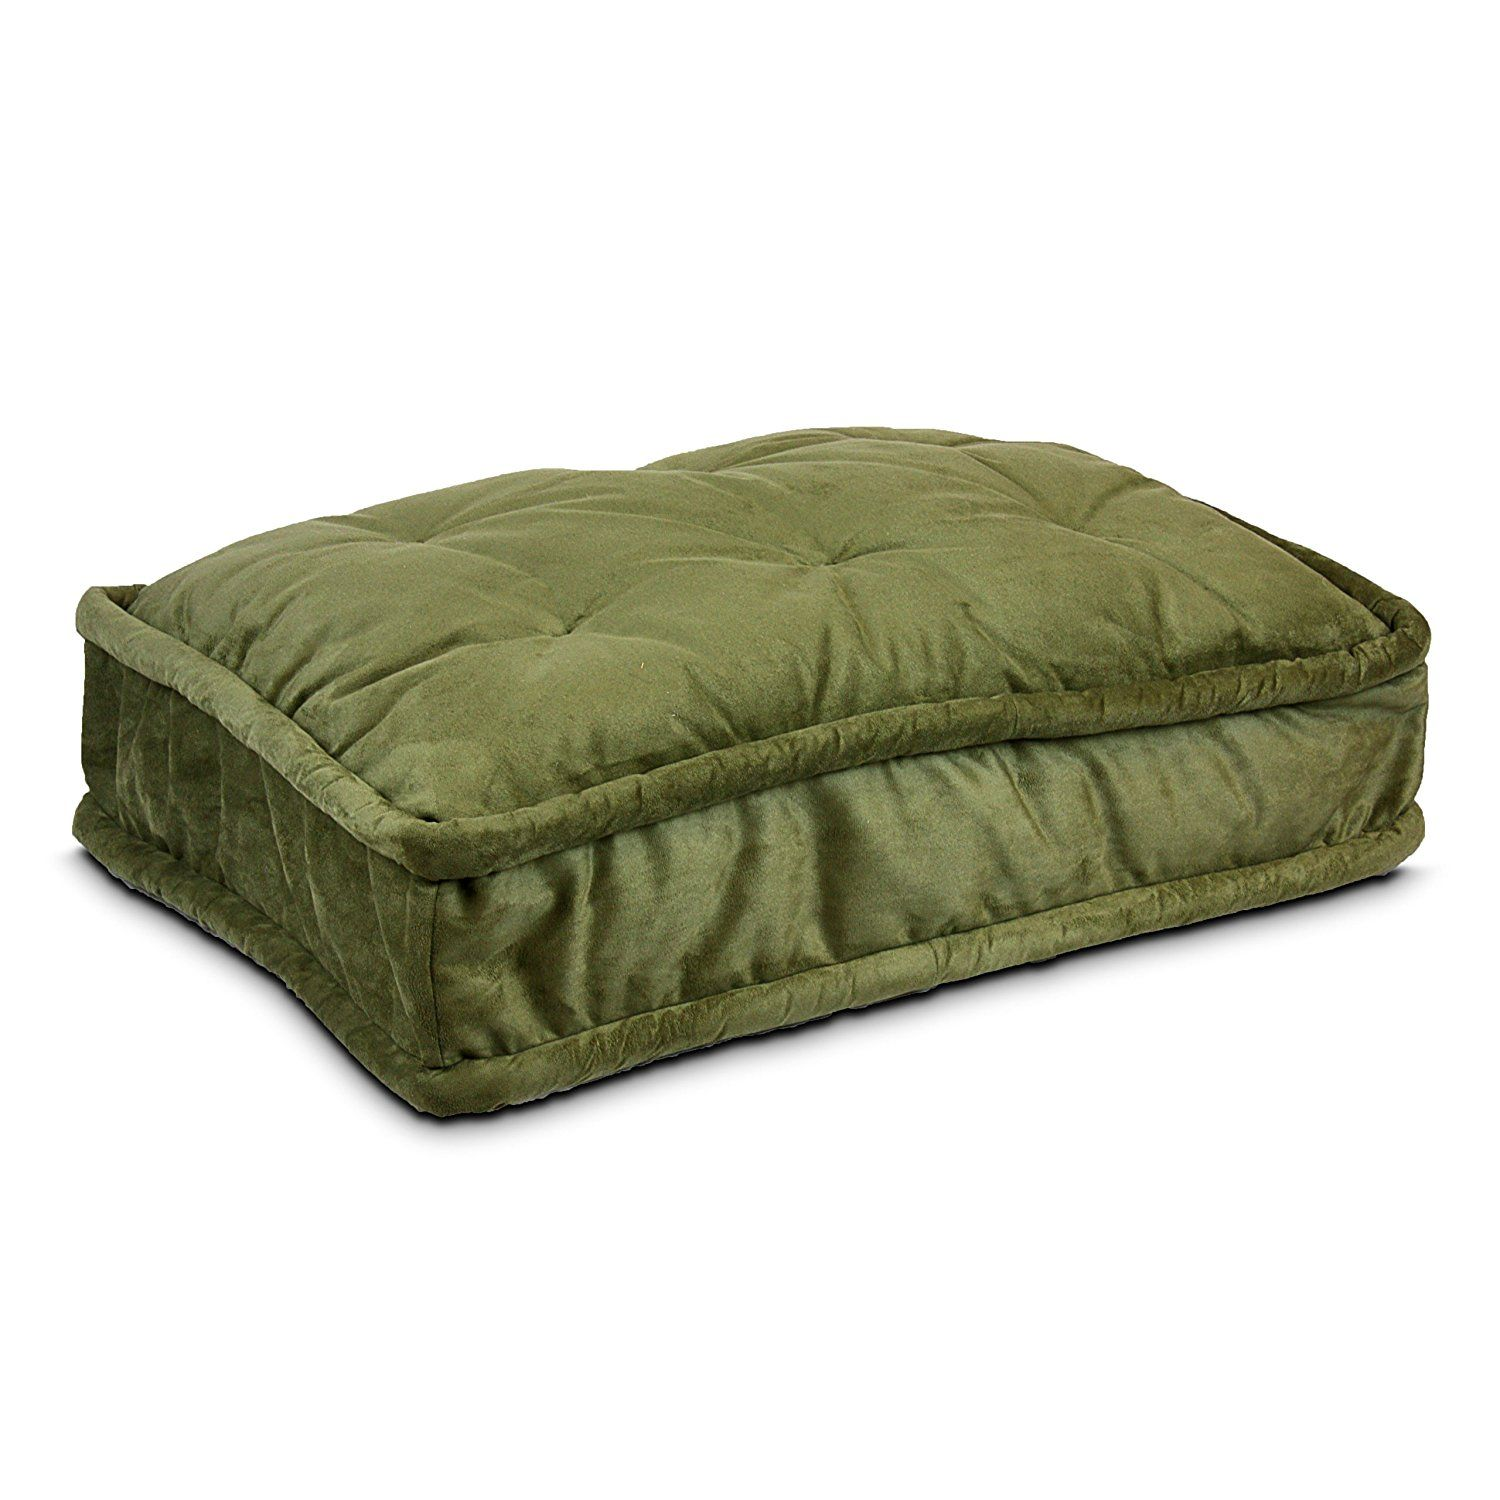 Snoozer Pillow Top Pet Bed, Large, Olive You can find